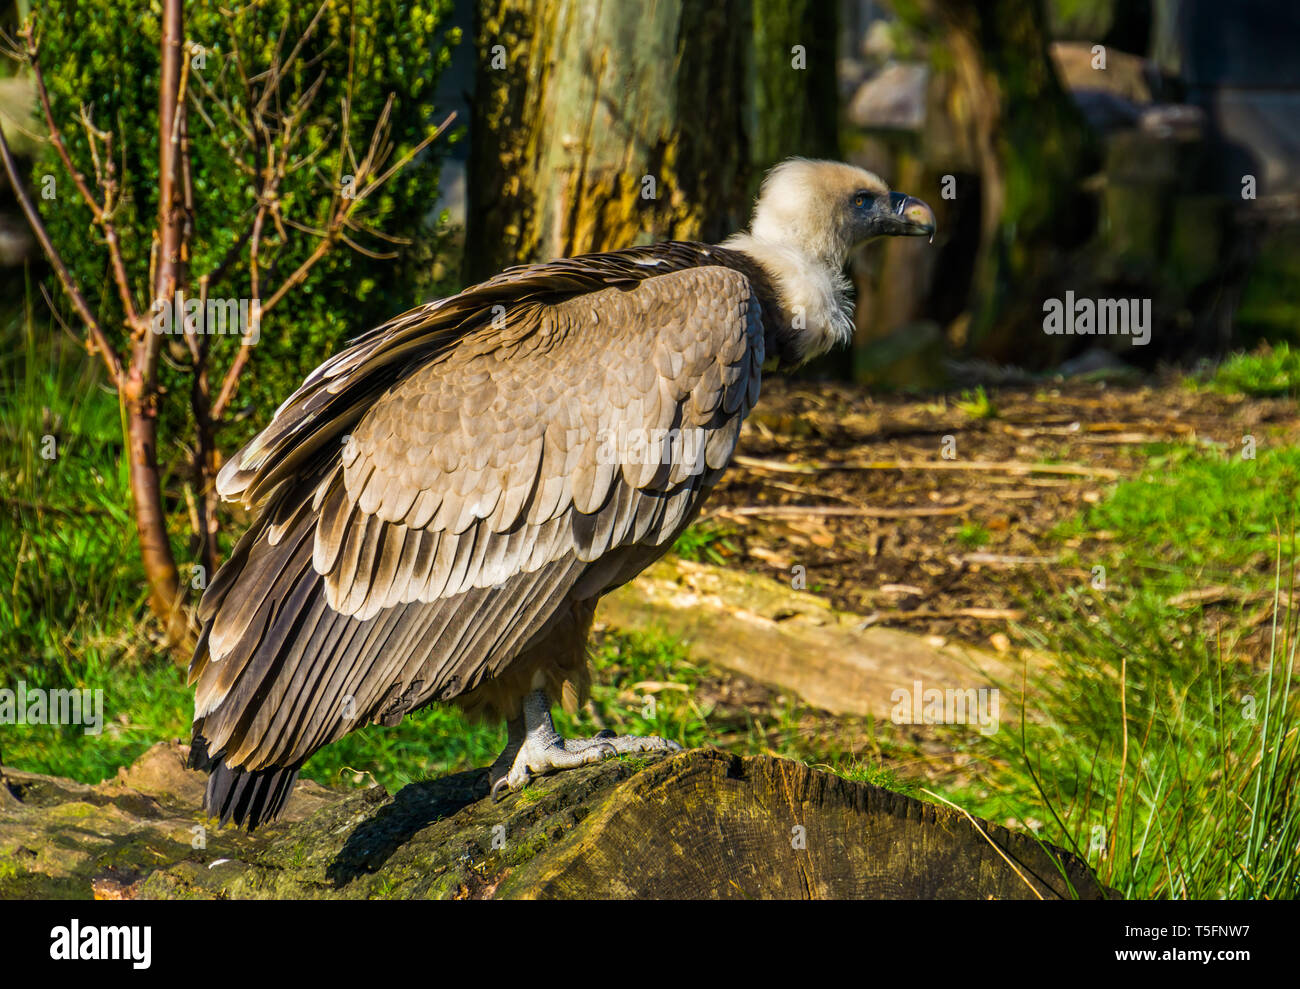 closeup of a griffon vulture standing on a tree trunk, common scavenger bird from europe Stock Photo